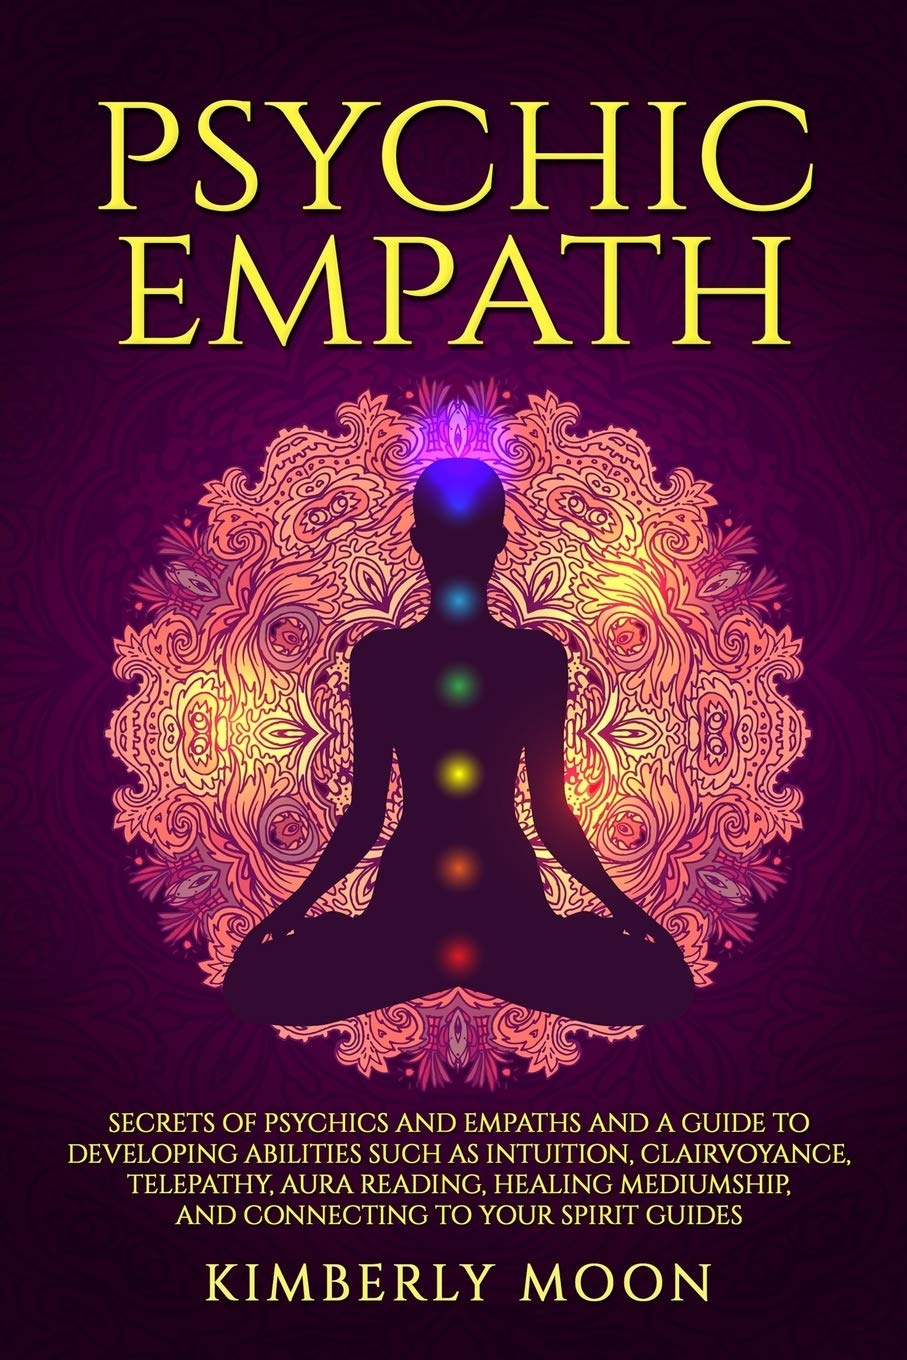 Psychic Empath: Secrets of Psychics and Empaths and a Guide